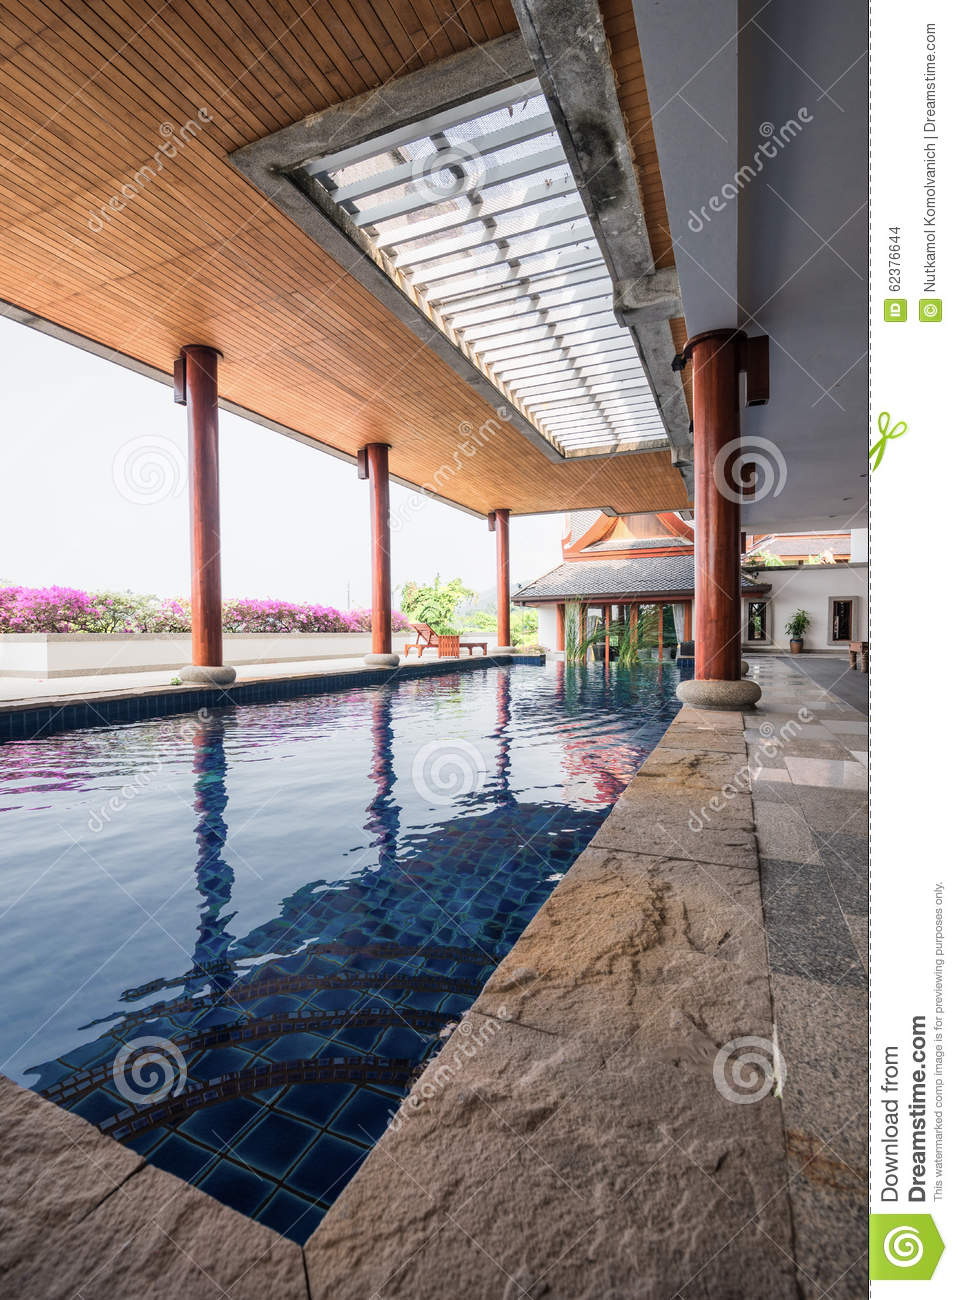 Swimming Pool Inside Thai Style House Stock Photo Image 62376644